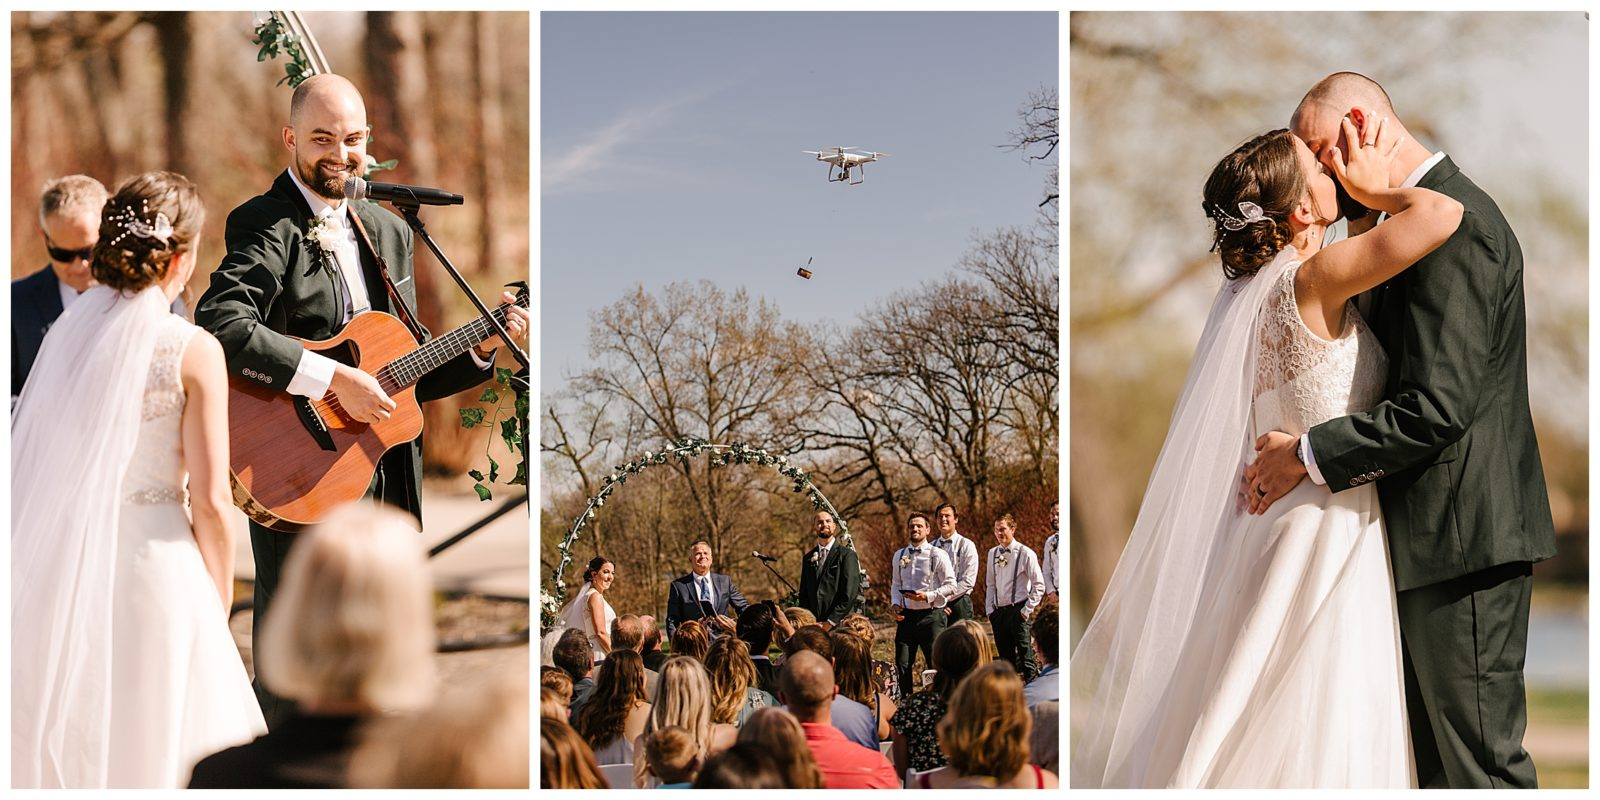 Silverwood Park wedding | May 4th wedding | Tigerlily Photography | Sixpence Events and Planning day of coordinating | groom plays a song during ceremony, drone delivers the rings